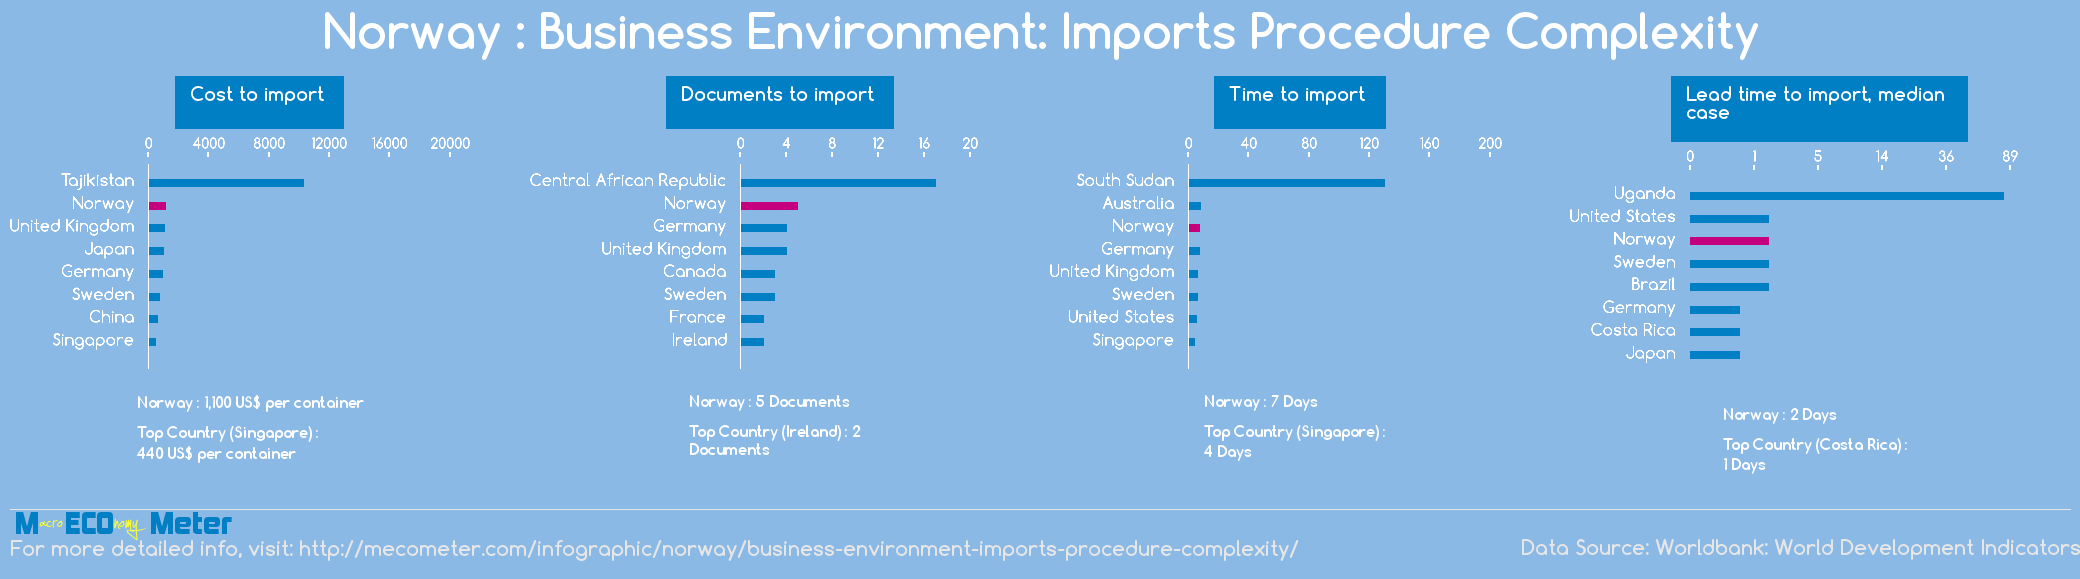 Norway : Business Environment: Imports Procedure Complexity